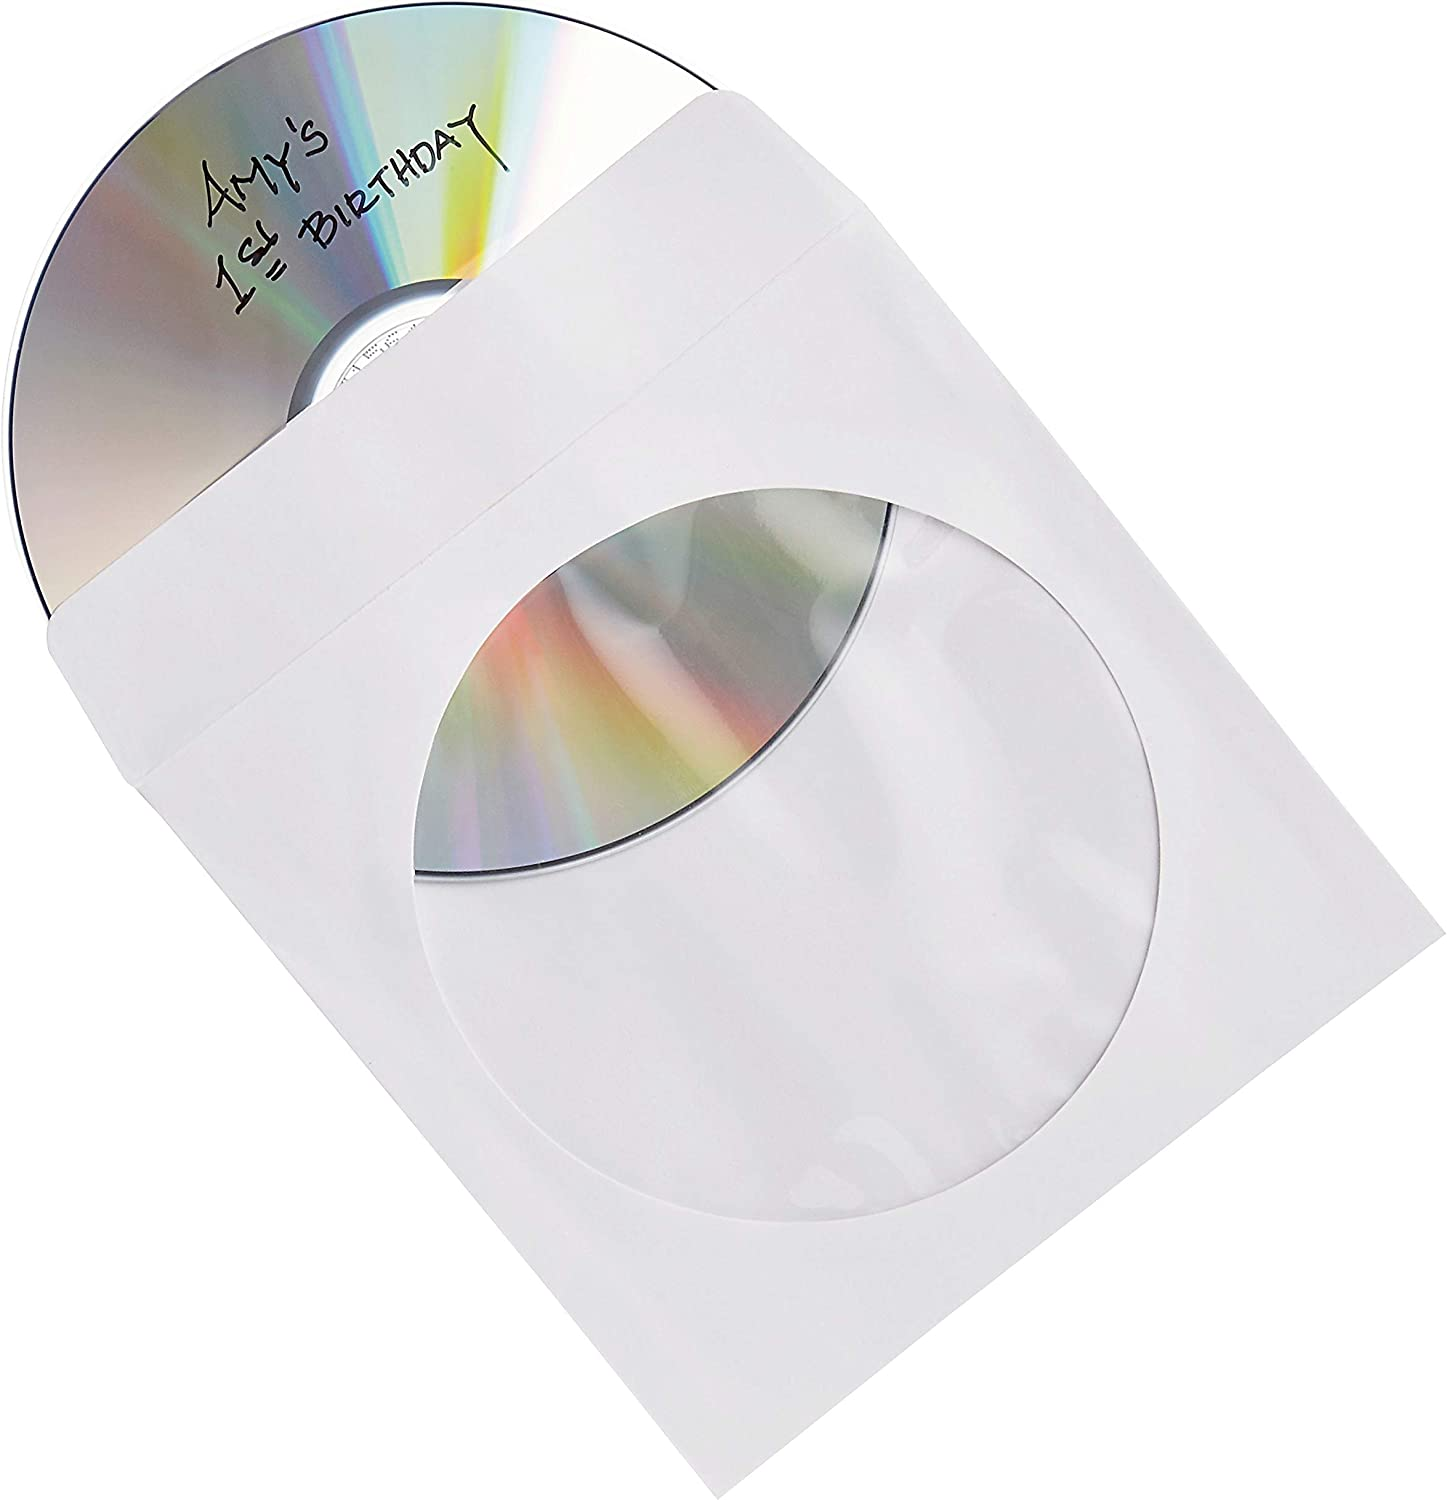 Verbatim CD/DVD Paper Sleeves-with Clear Window 100pk: Home Audio & Theater